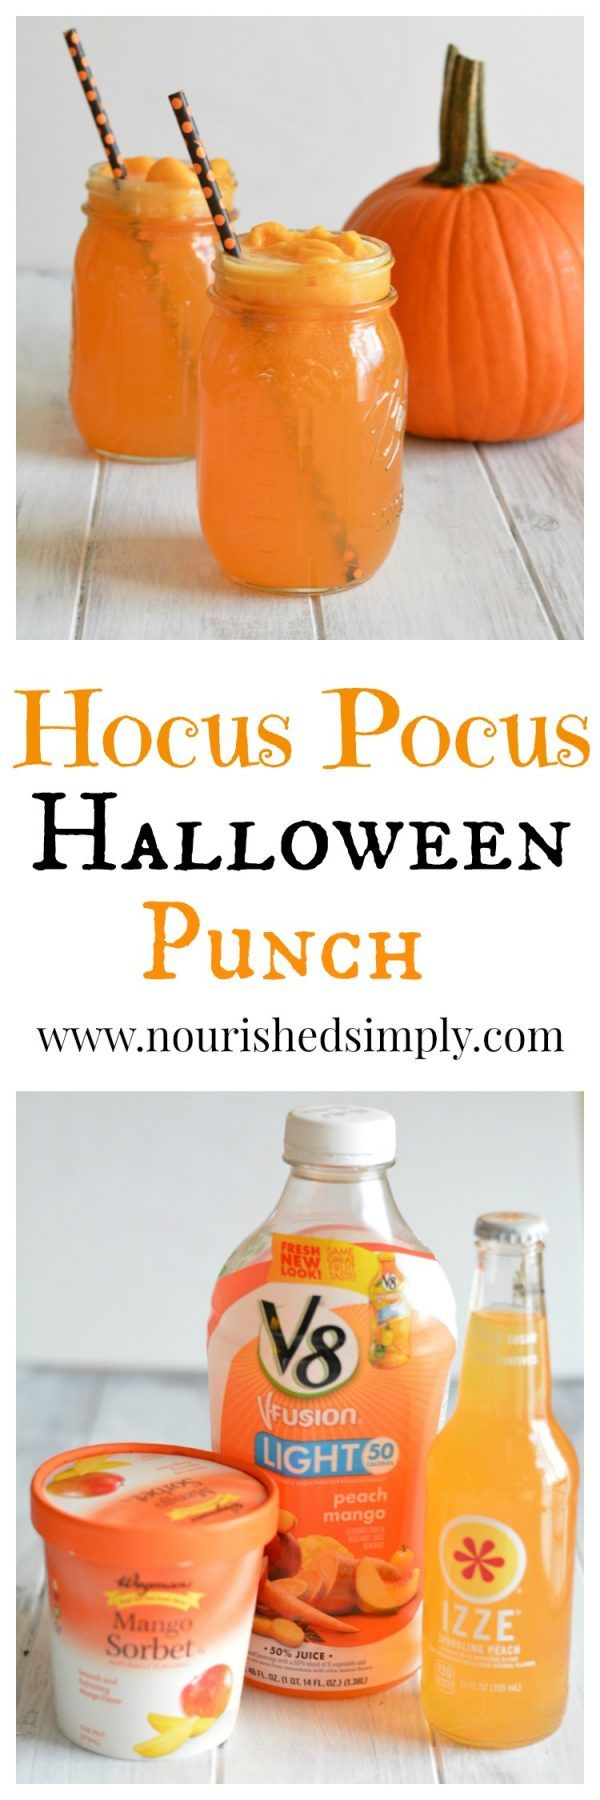 Add Hocus Pocus Halloween Punch to your Halloween Celebration. No artificial colors.